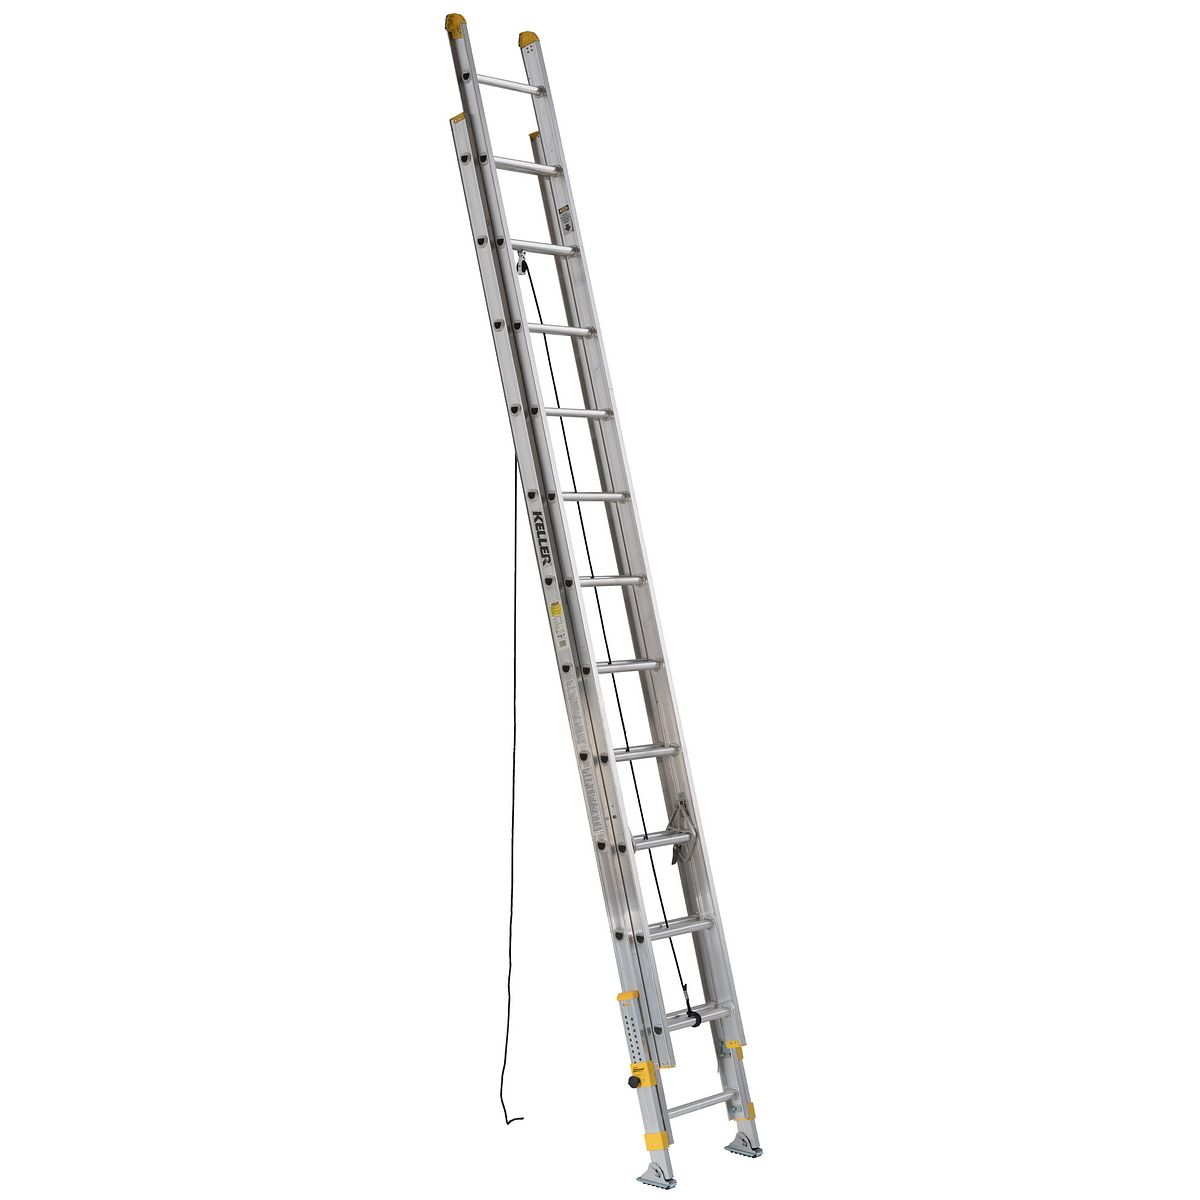 Keller Ladder Extension Ladders